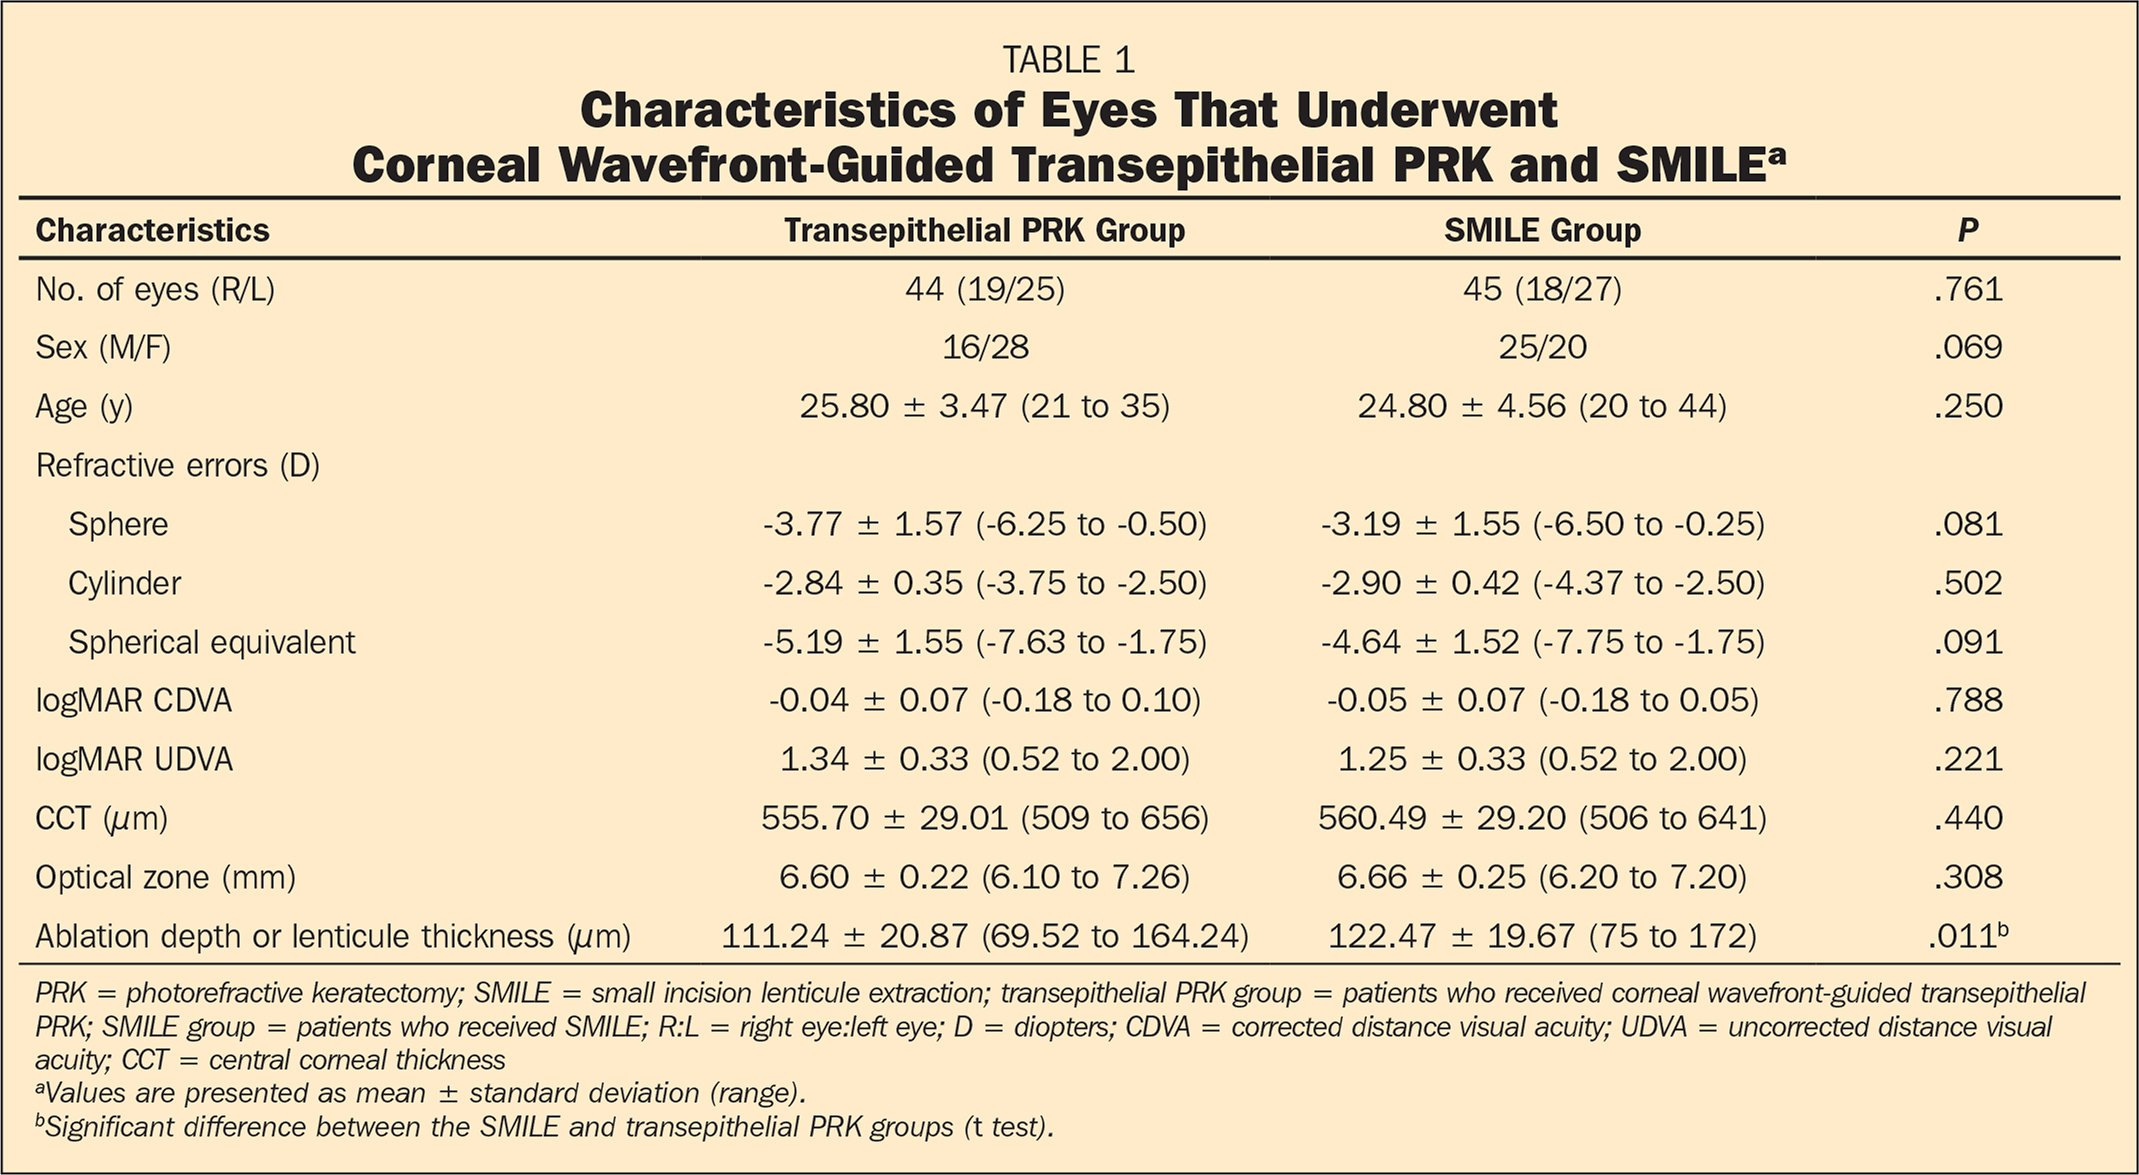 Characteristics of Eyes That Underwent Corneal Wavefront-Guided Transepithelial PRK and SMILEa